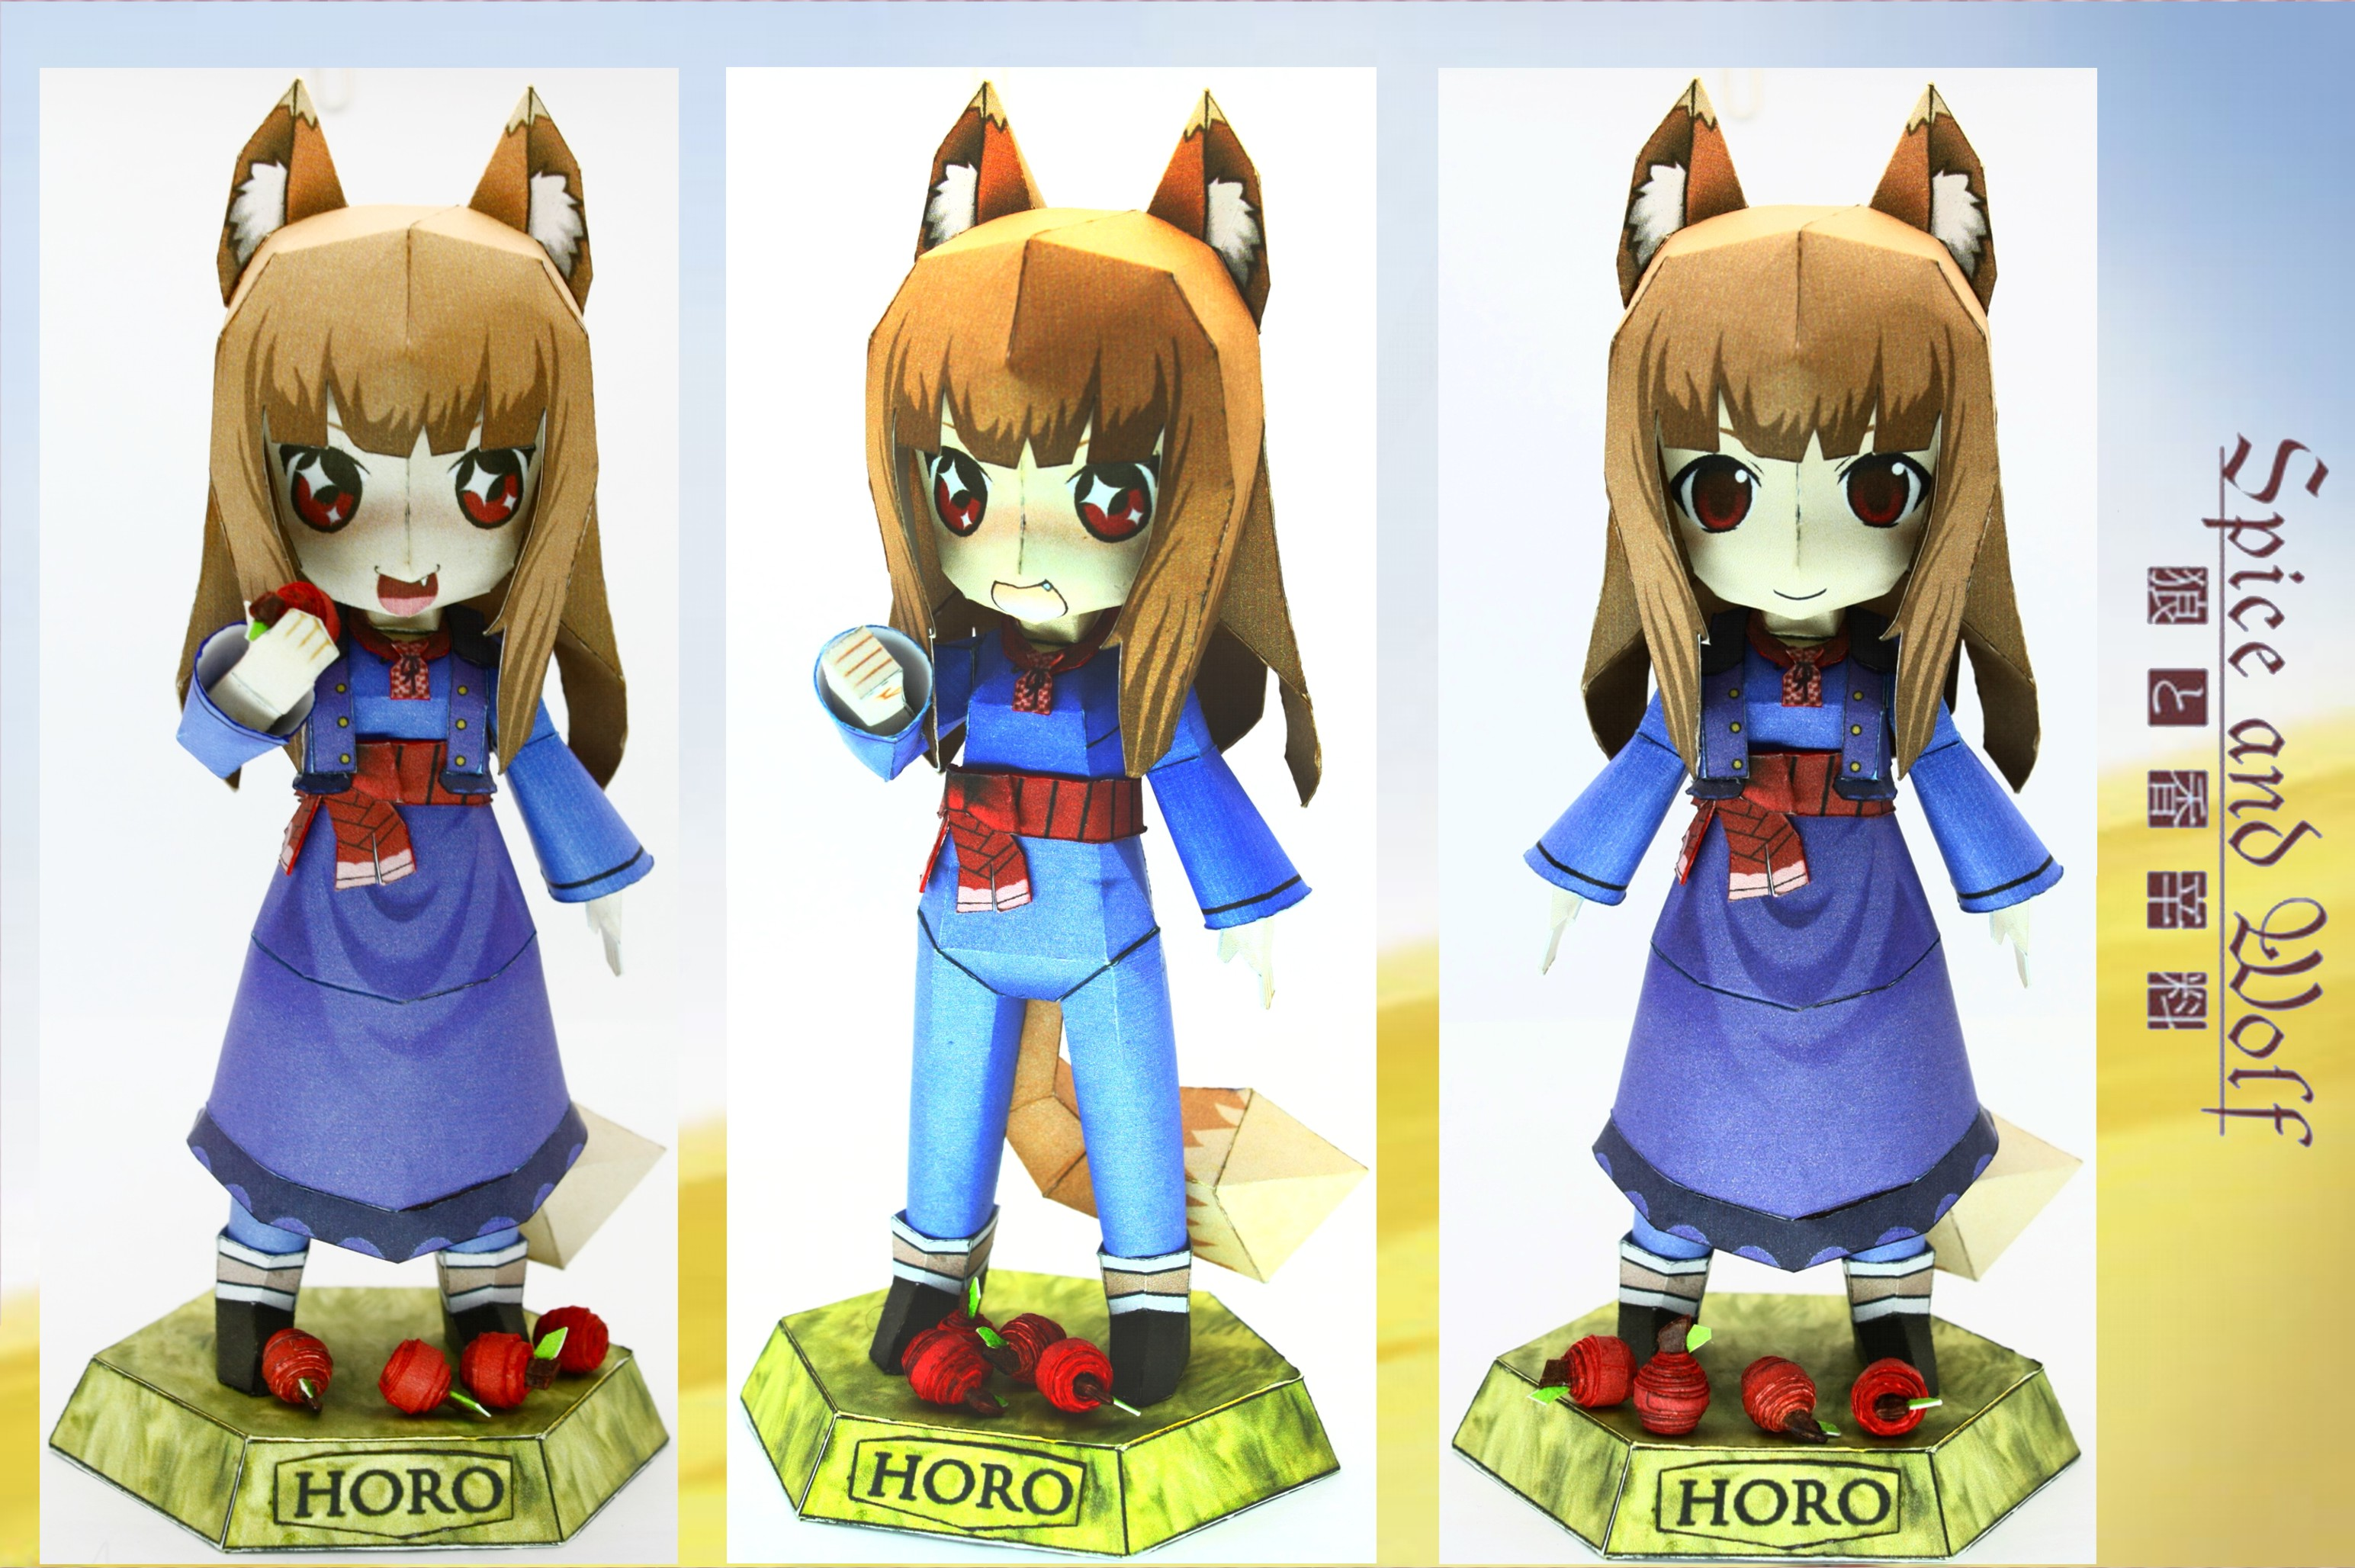 Spice and Wolf Horo